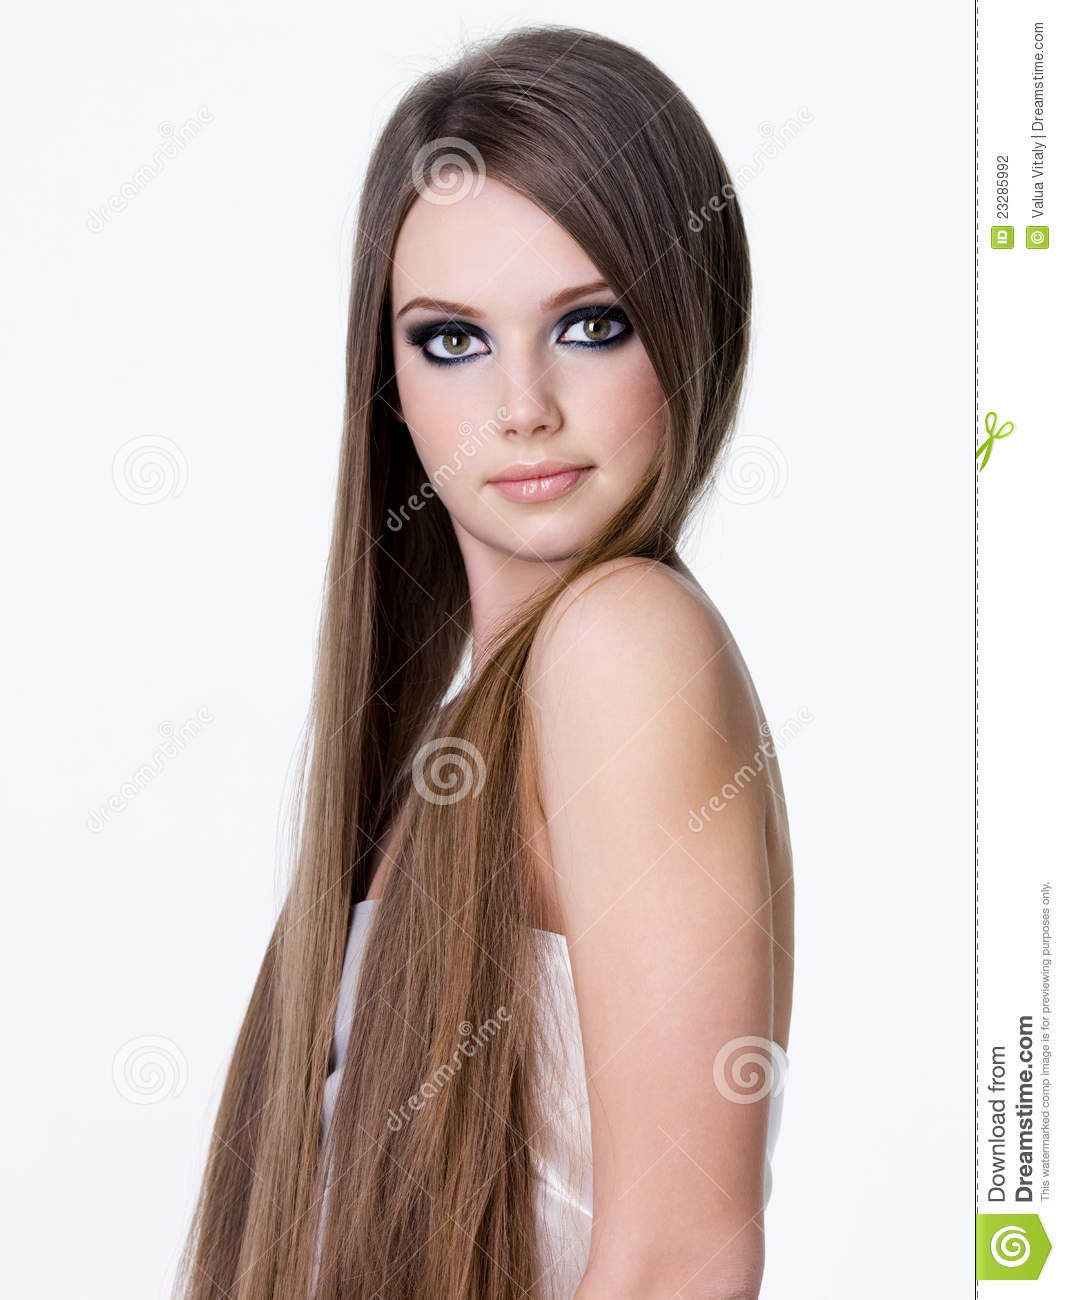 Beautiful Girl With Long Straight Hair Stock Photo - Image of young, studio: 23285992